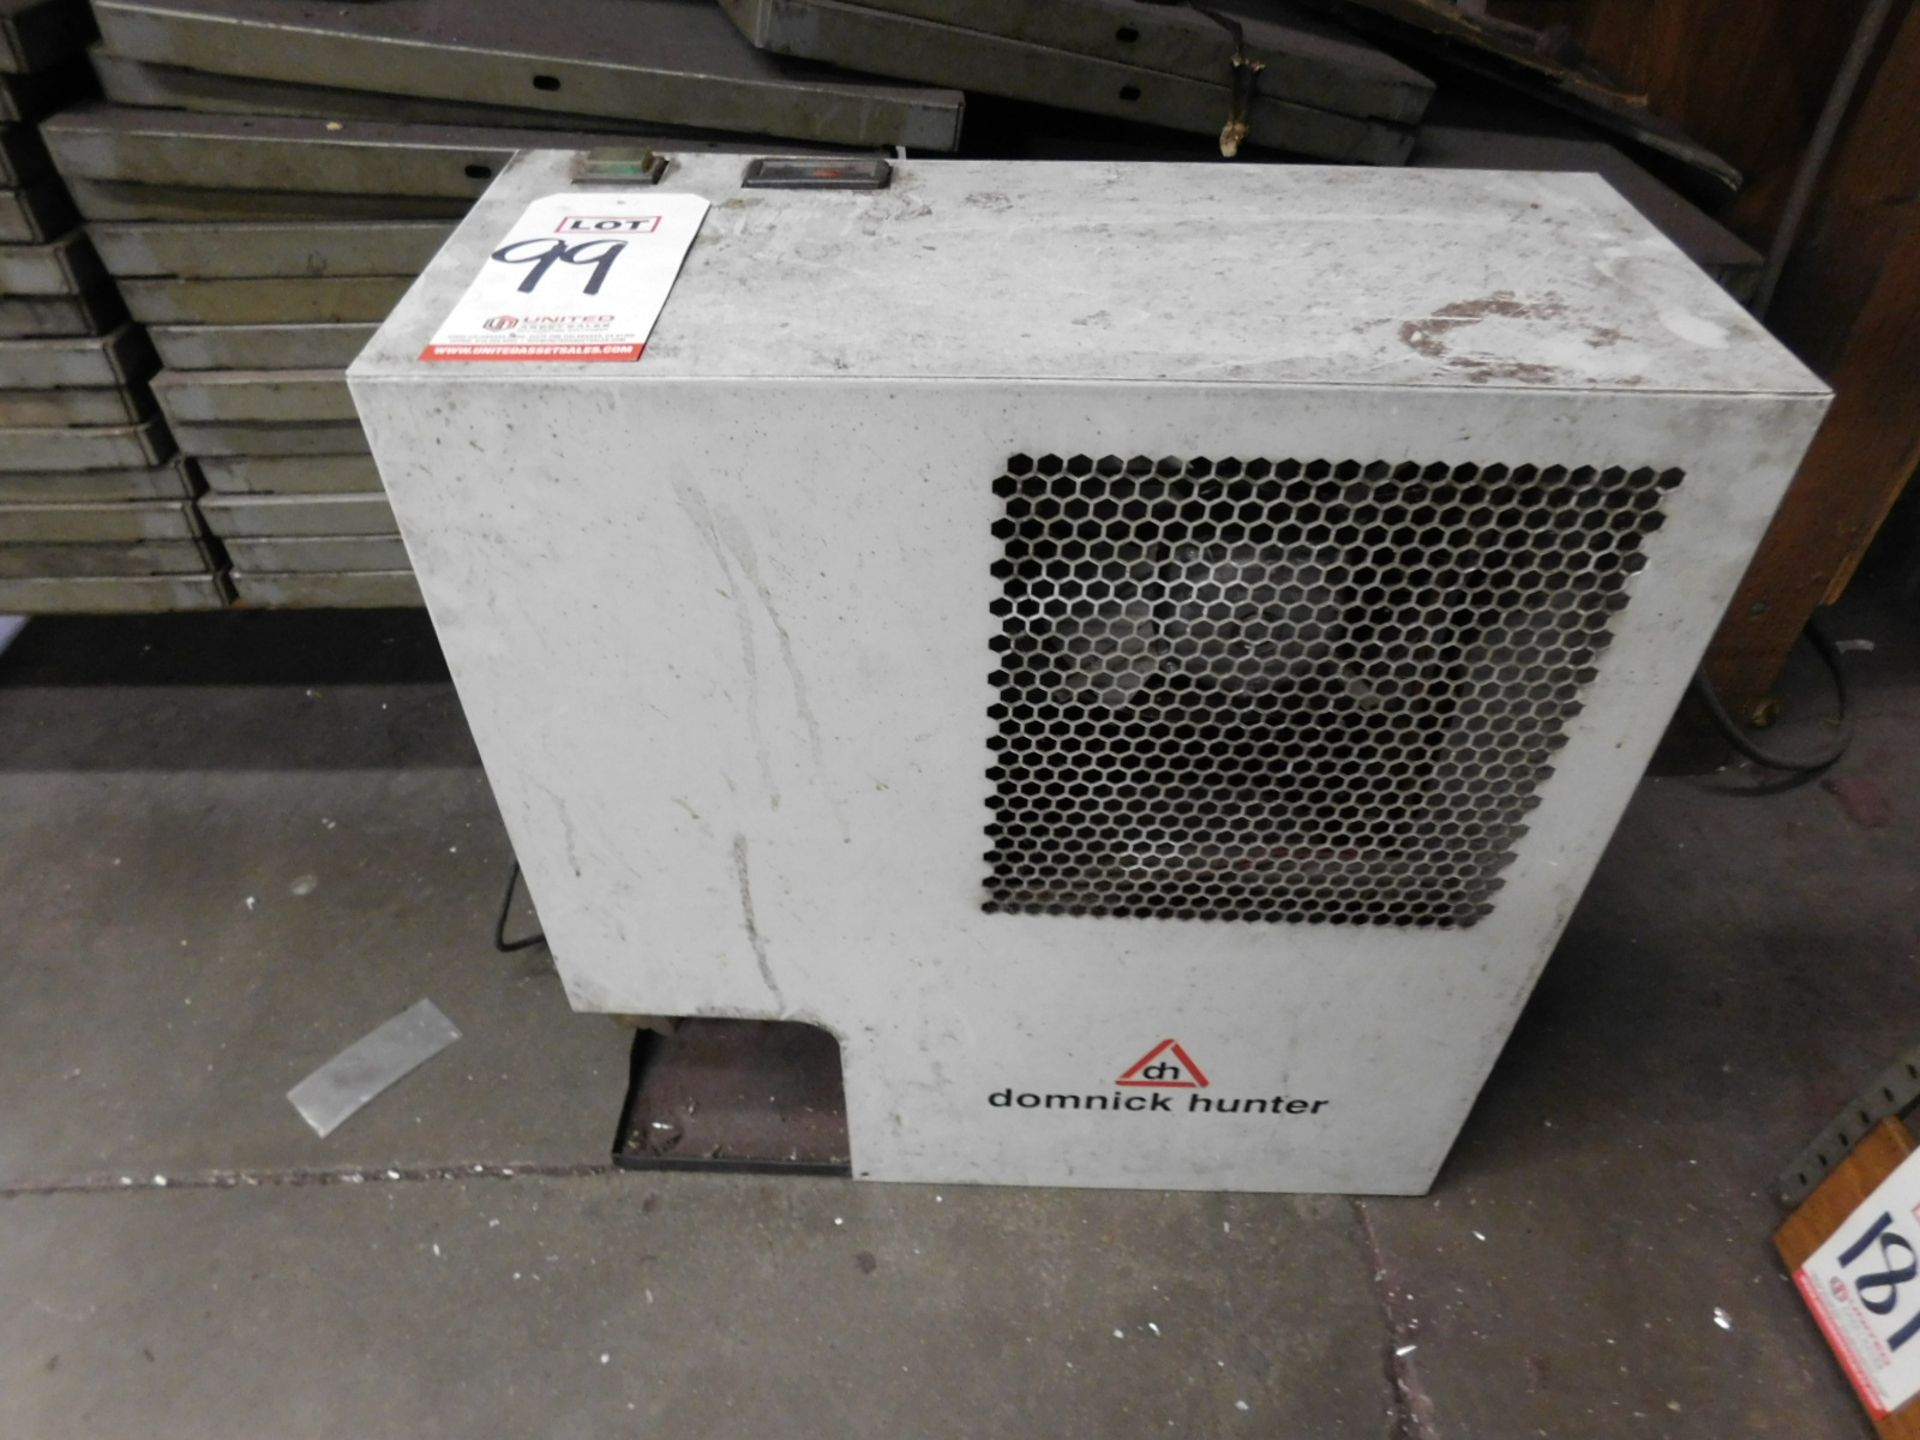 DOMNICK HUNTER DRD50 REFRIGERATED AIR DRYER, OUT OF SERVICE